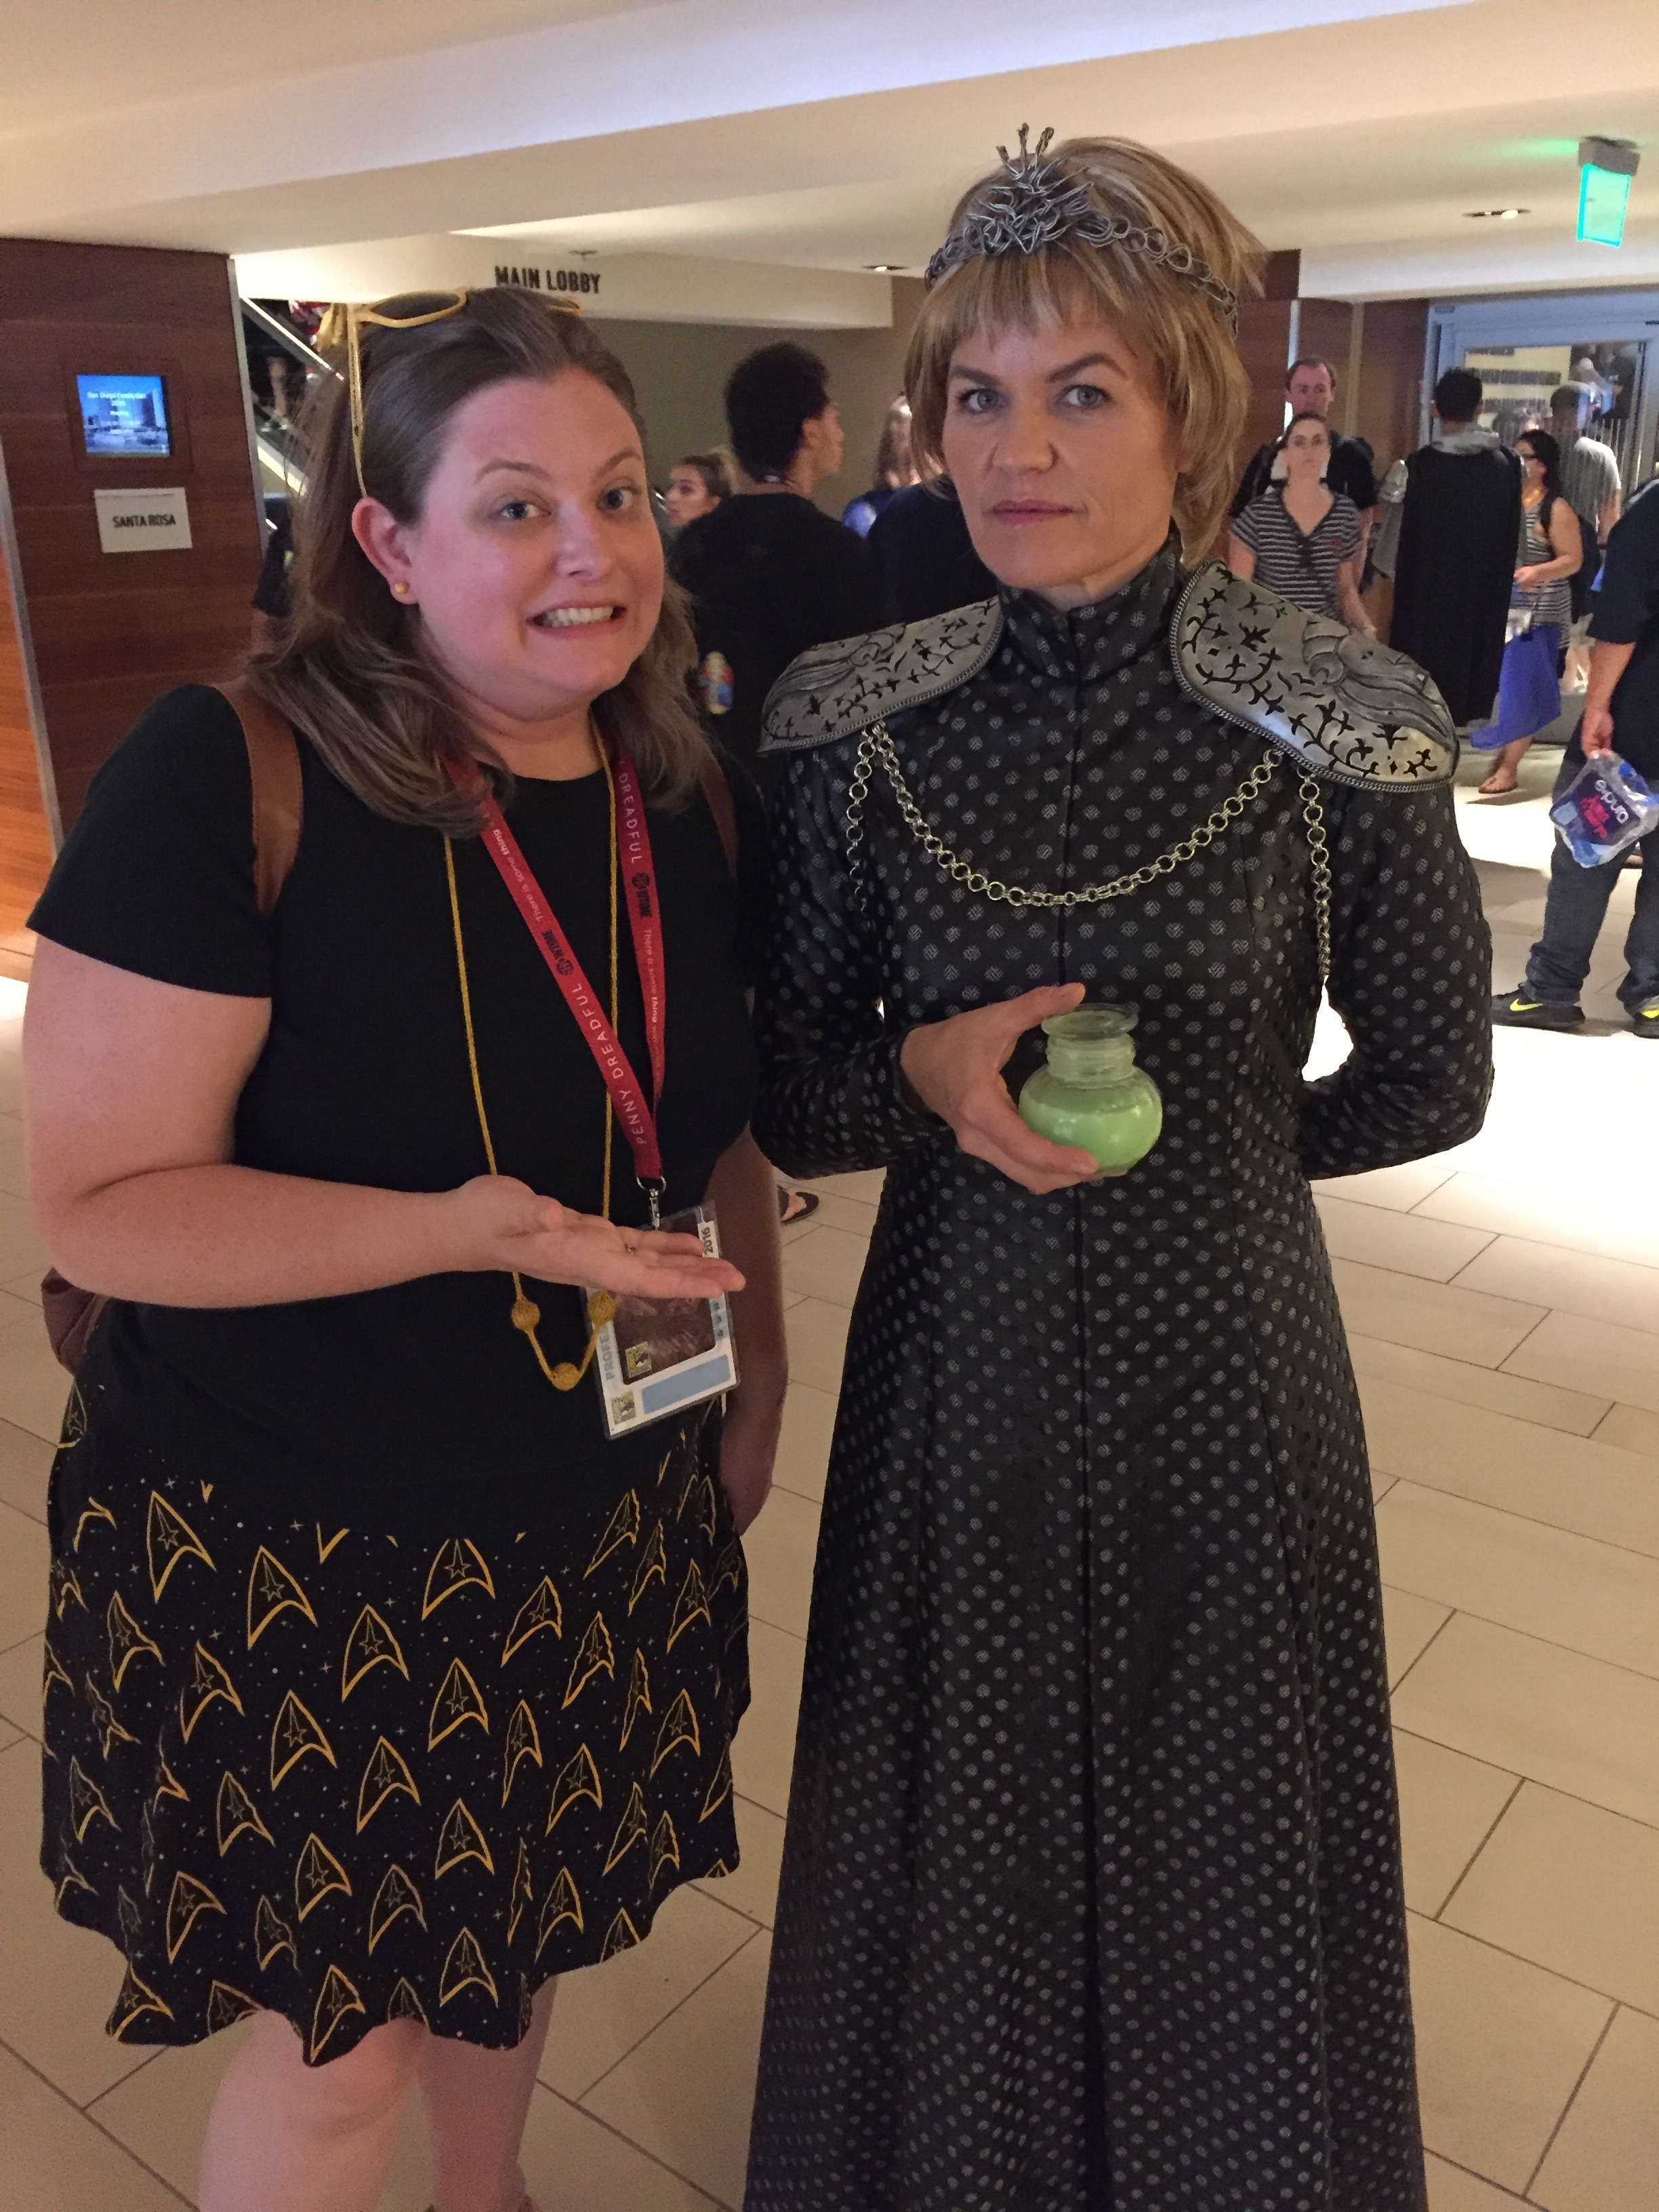 Found Cersei Lannister at Comic Con this year.